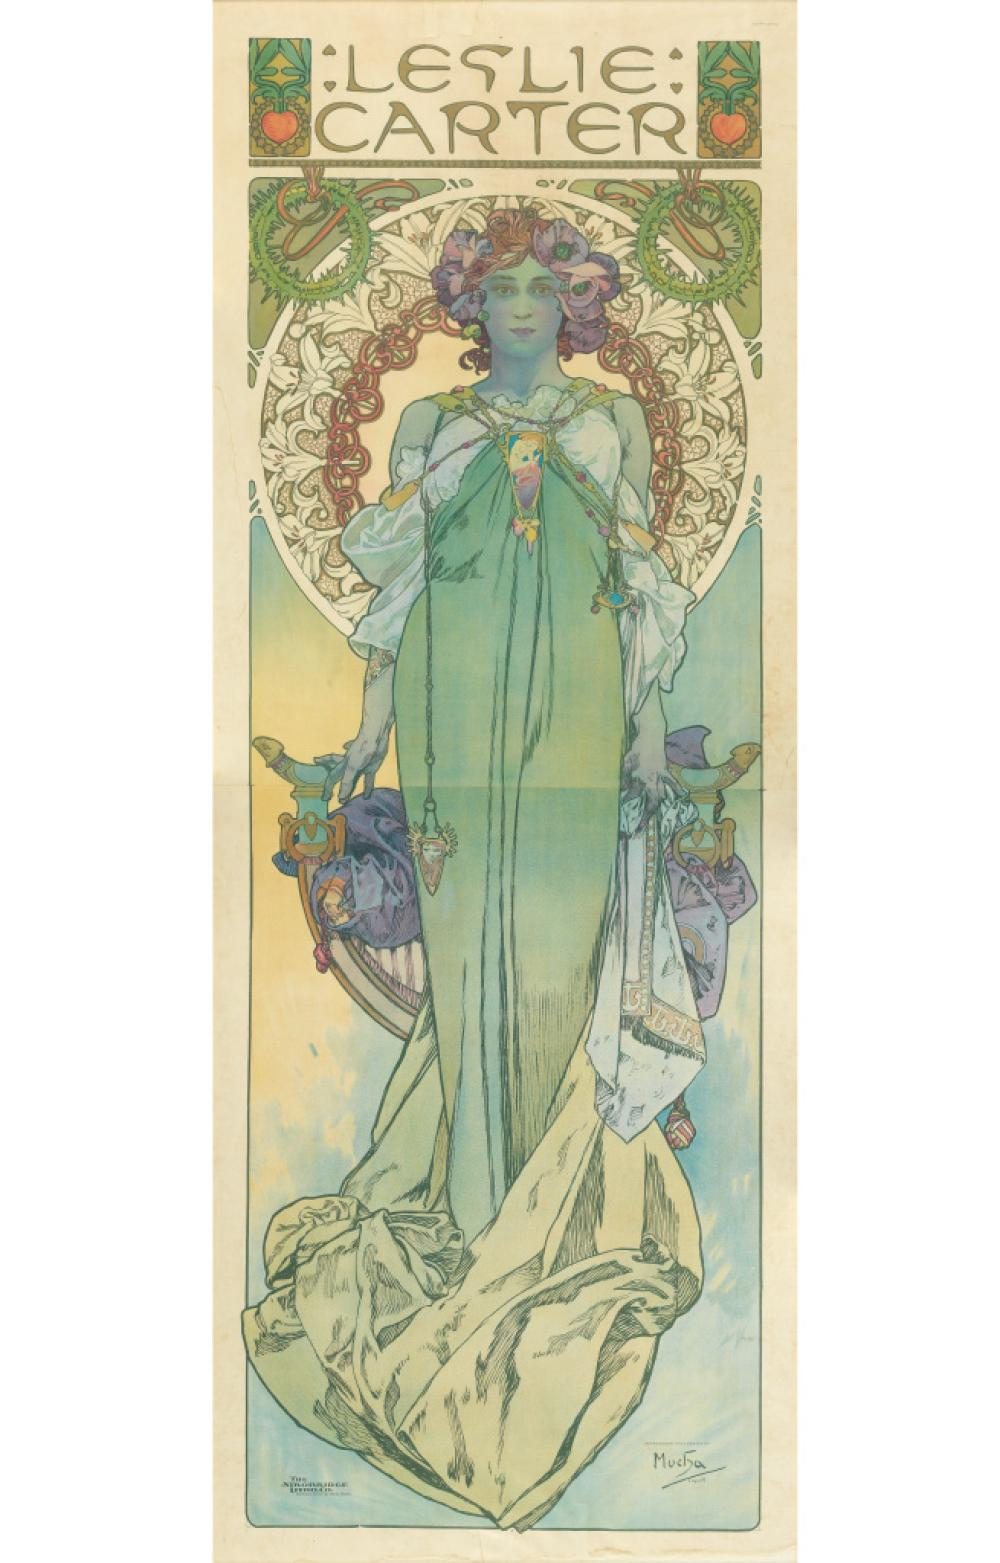 ALPHONSE MUCHA (1860-1939). LESLIE CARTER. 1908. 83x31 inches, 210x78 cm. The Strobridge Litho. Co., Cincinnati.